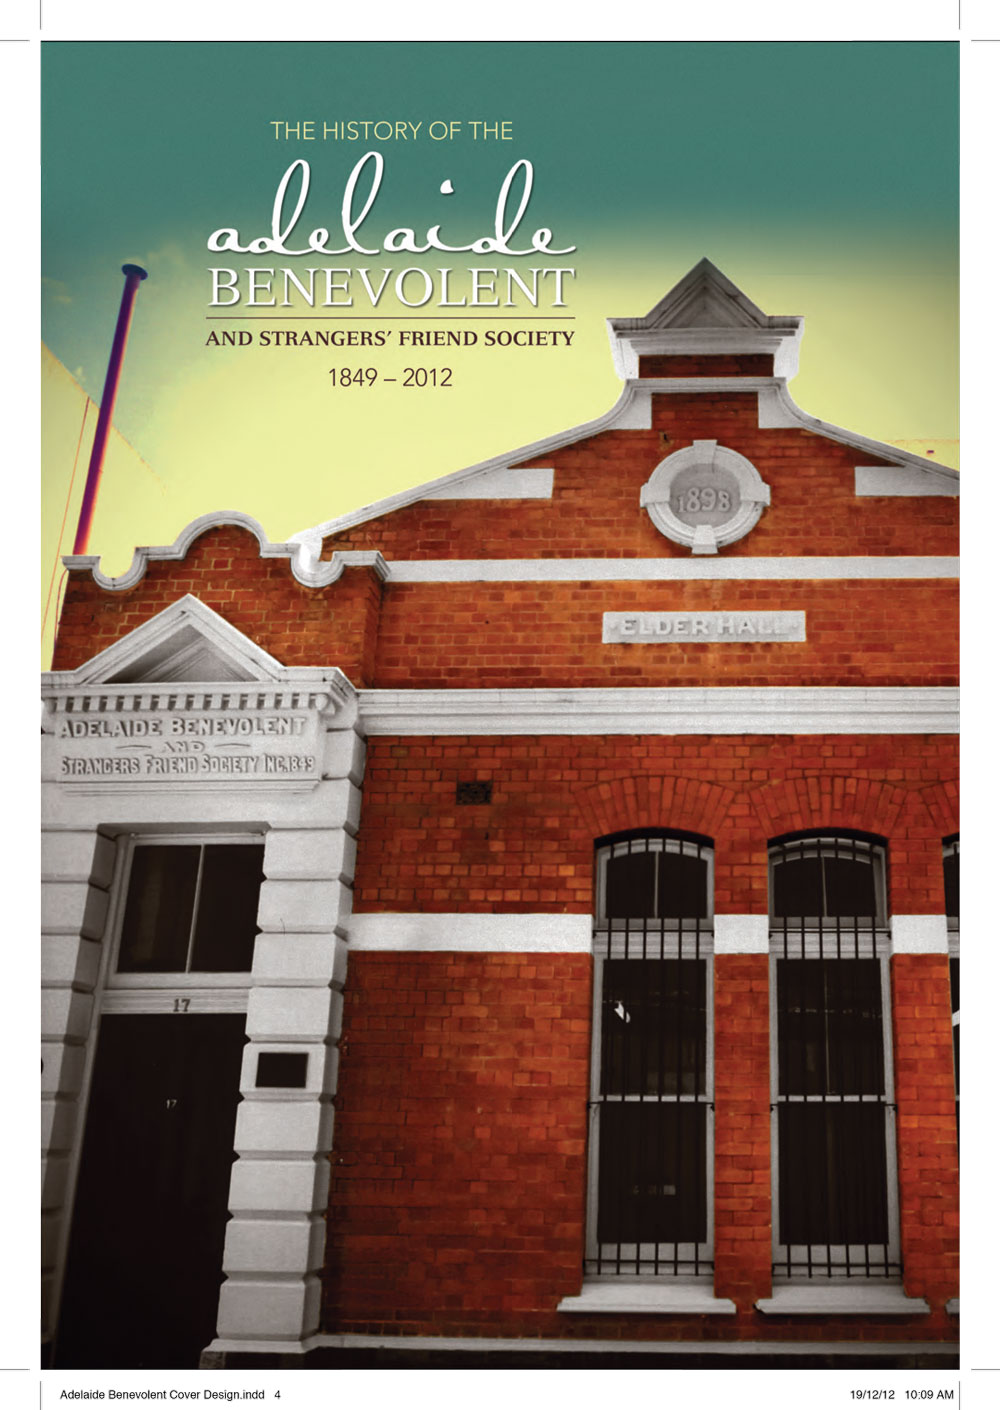 The History of the Adelaide Benevolent and Strangers' Friend Society 1849-2012